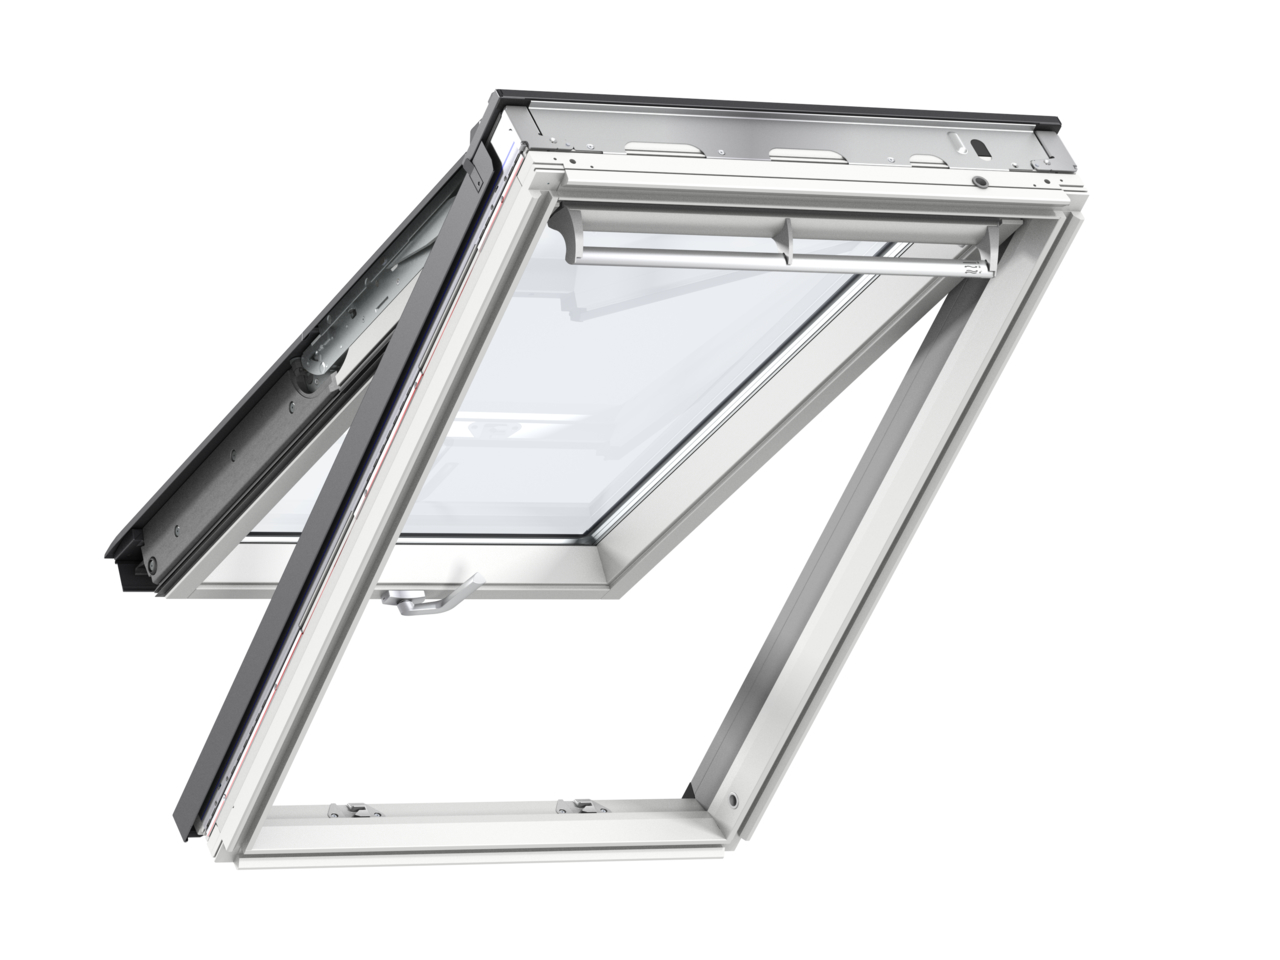 Velux GPL PK10 940 x 1600mm Top Hung 60Pane Roof Window - White Painted